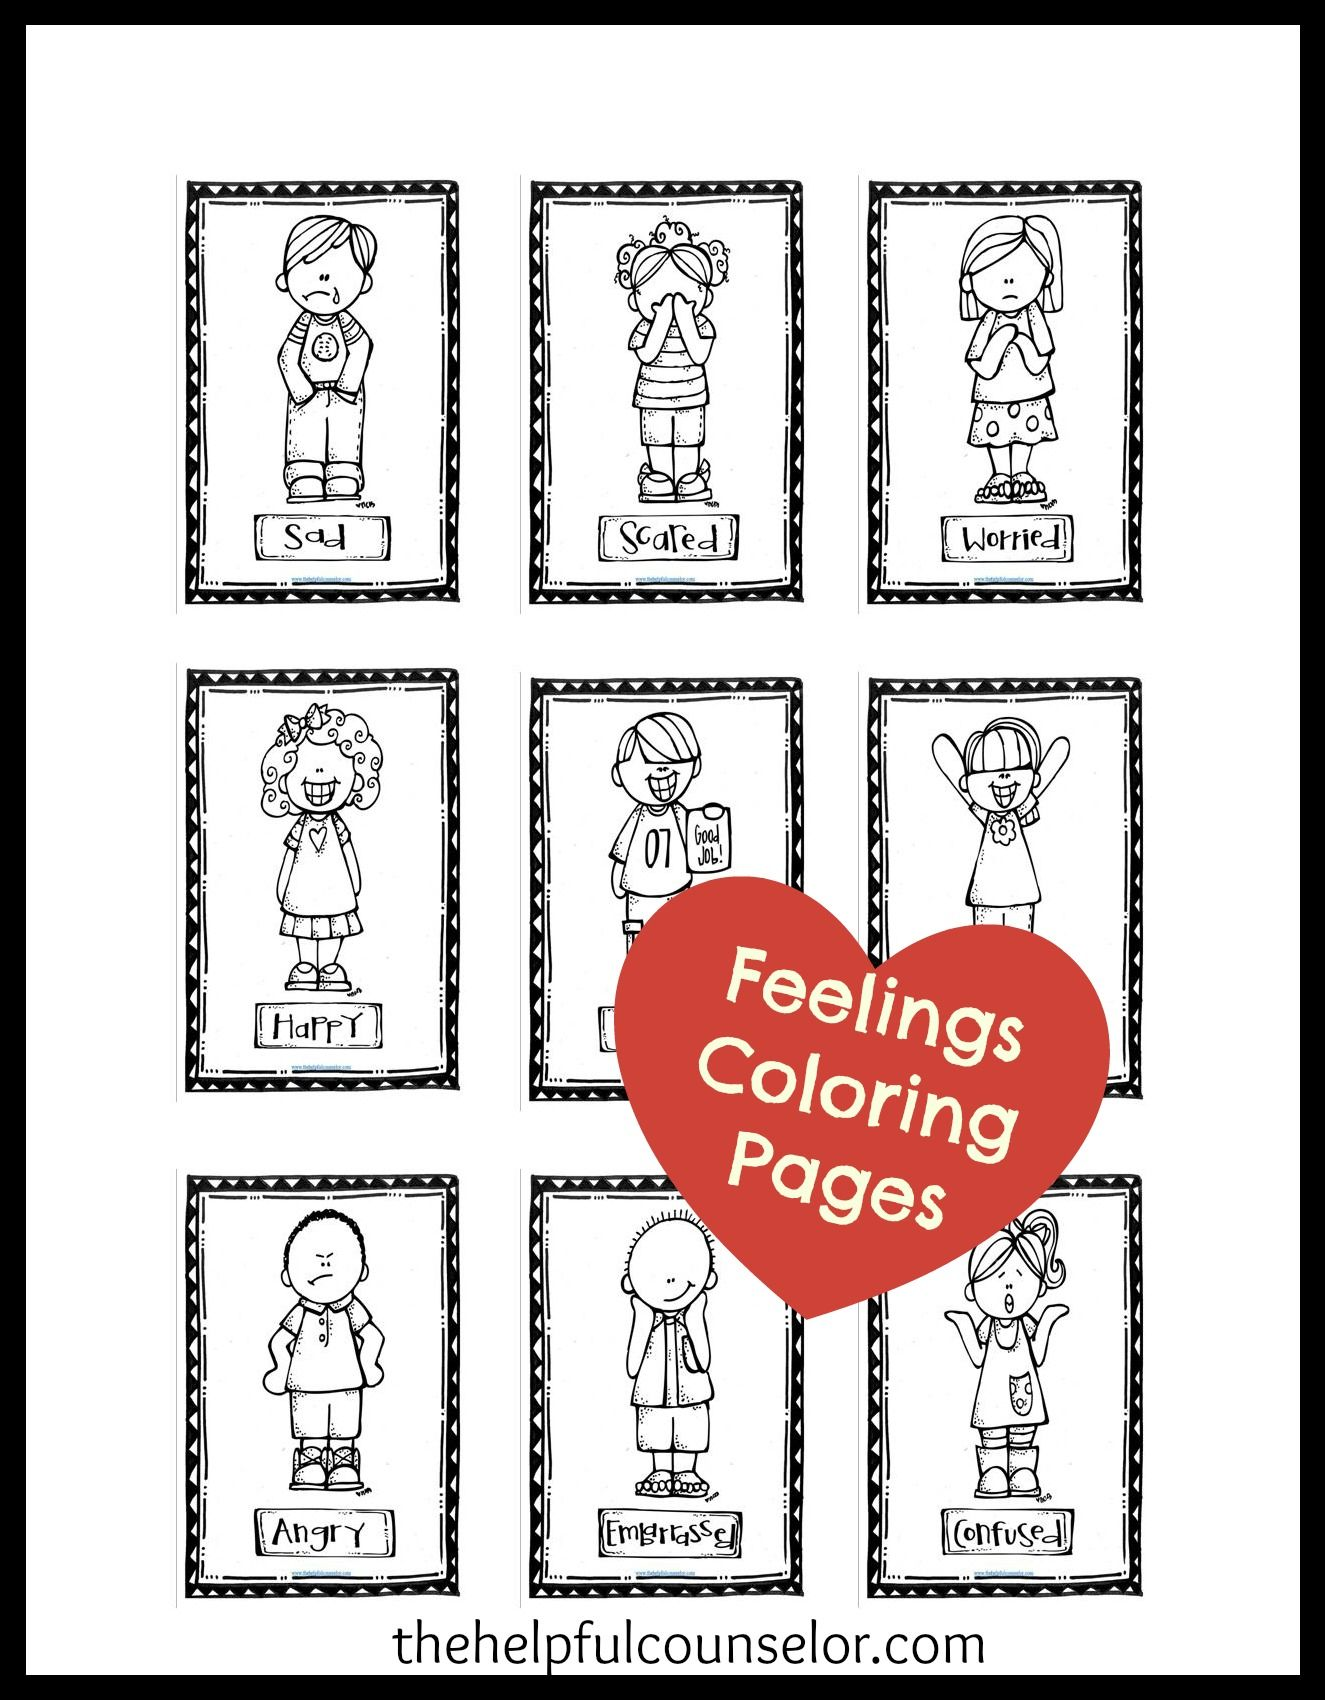 L sound coloring pages - Feelings Coloring Pages Newsletter Freebie